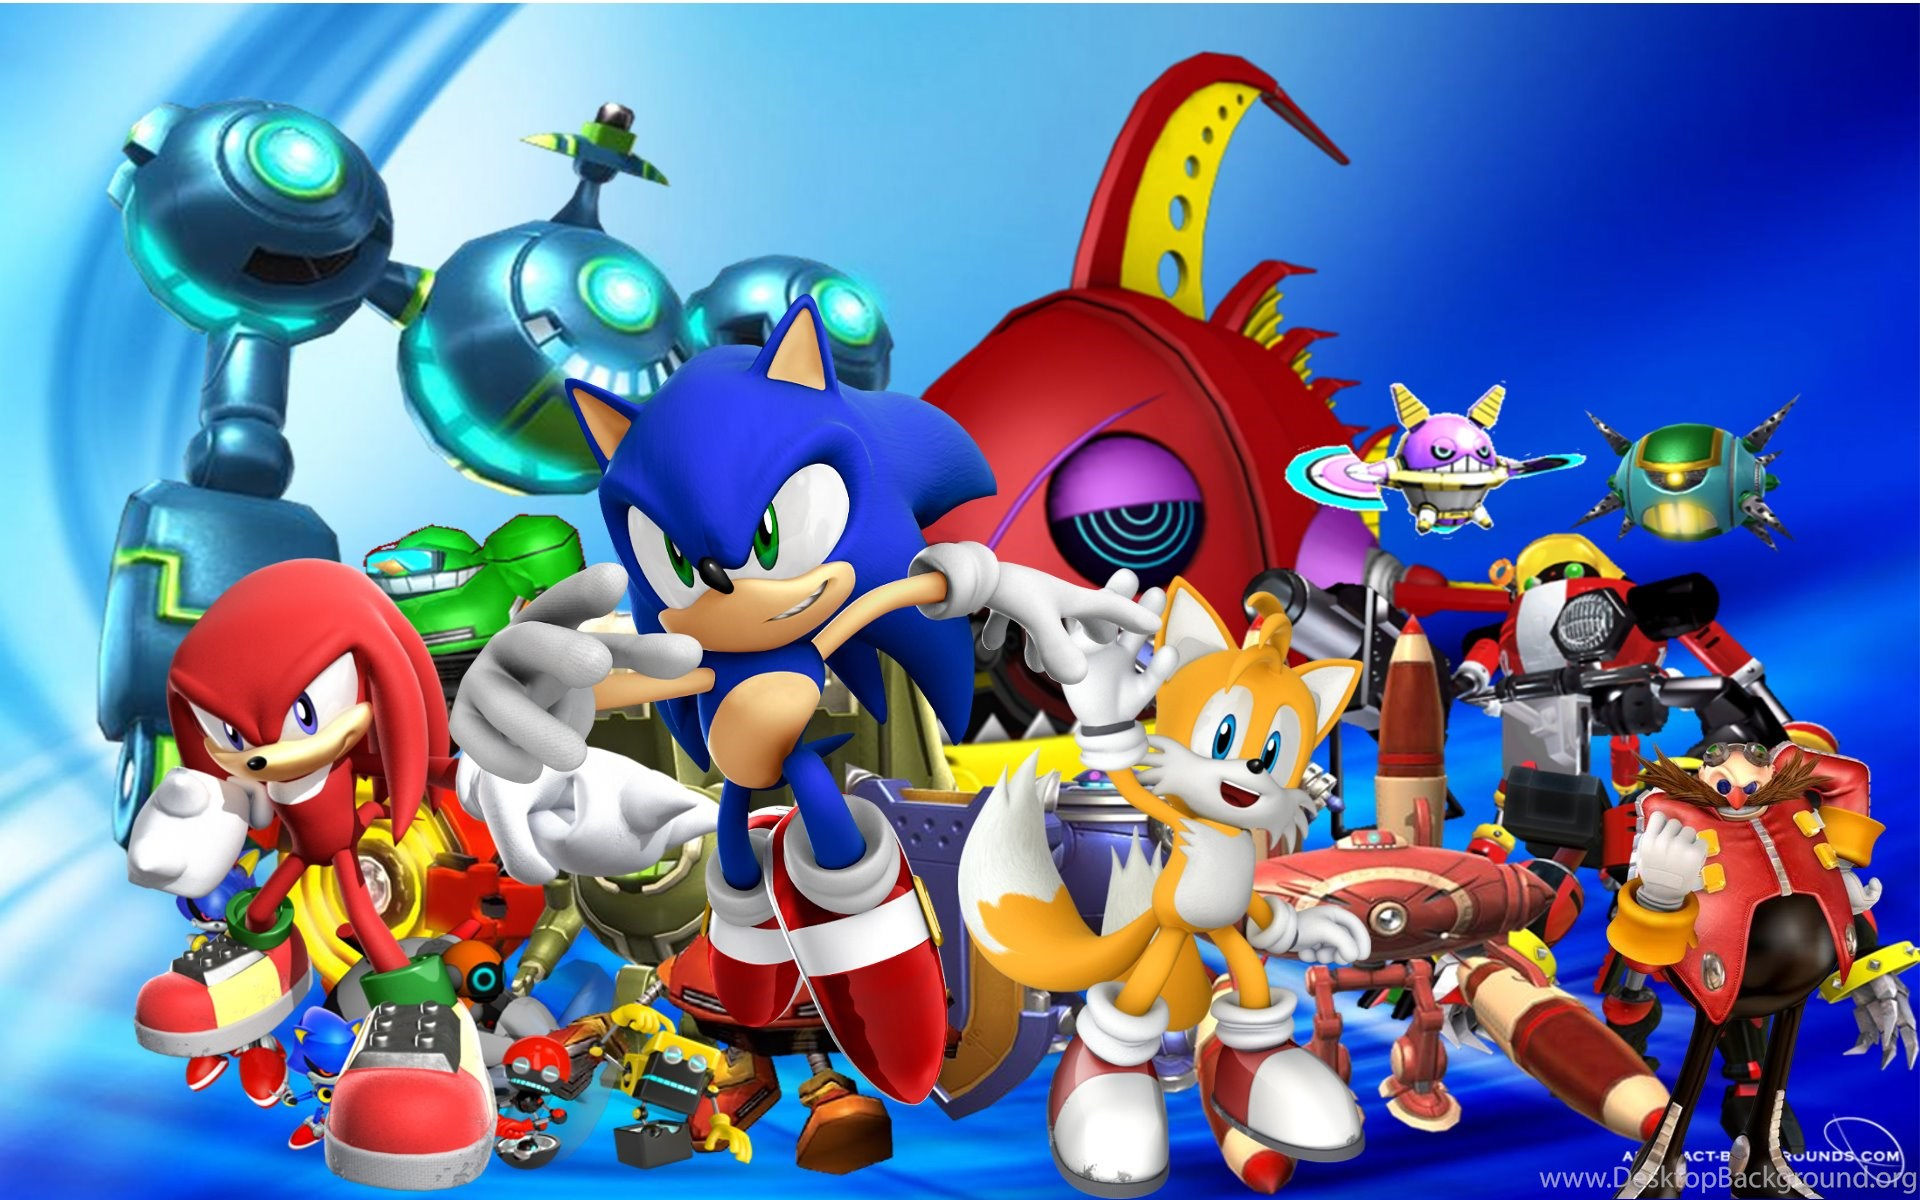 Colorful Sonic The Hedgehog Wallpaper Backgrounds For Pc Desktop Background